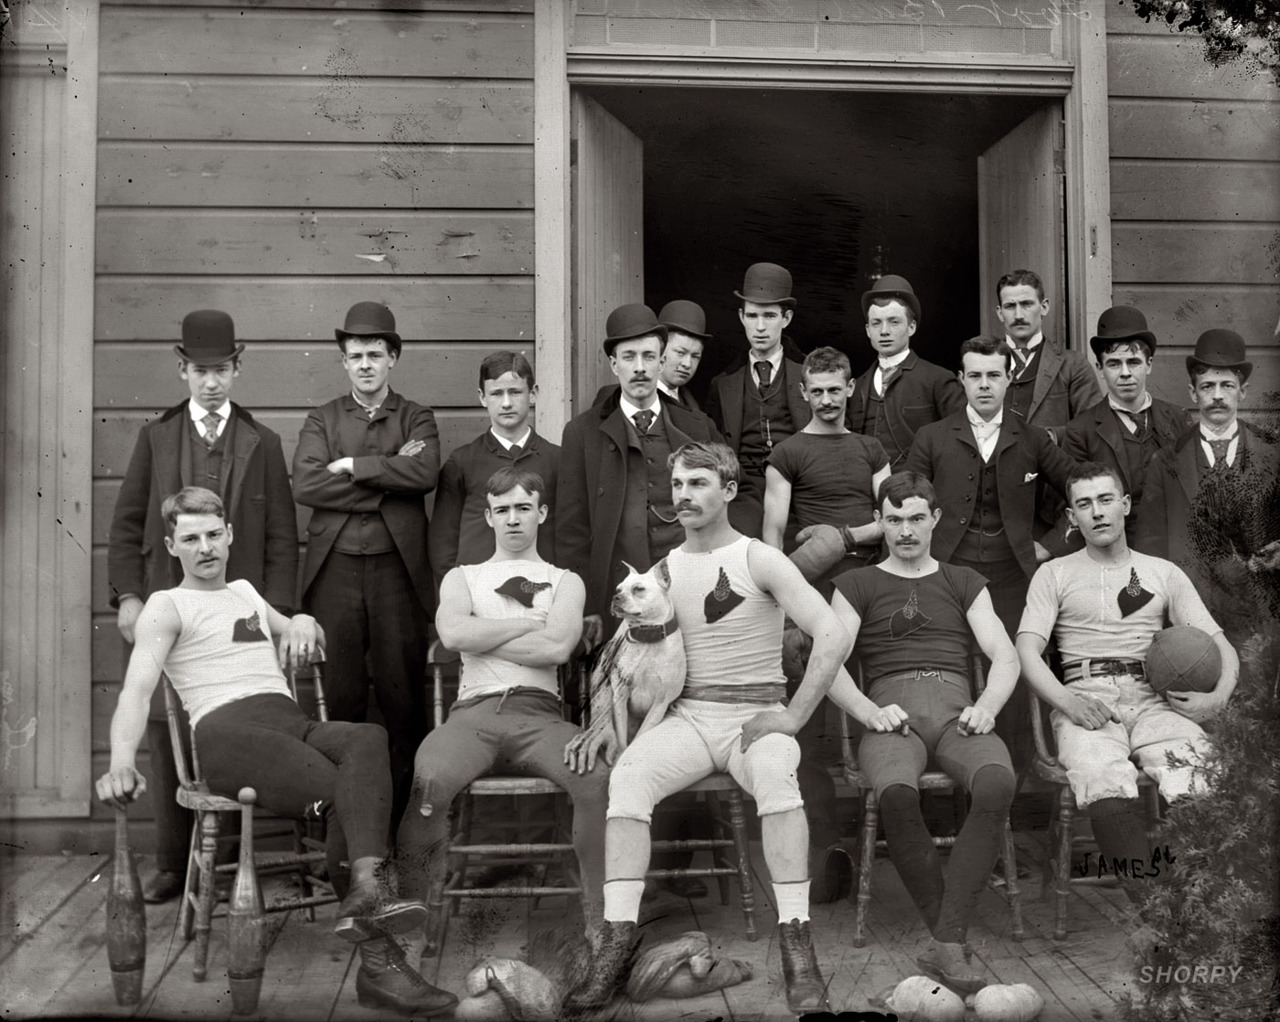 Football team, c. 1895-1910 (Library of Congress via Shorpy) Submitted by charles116